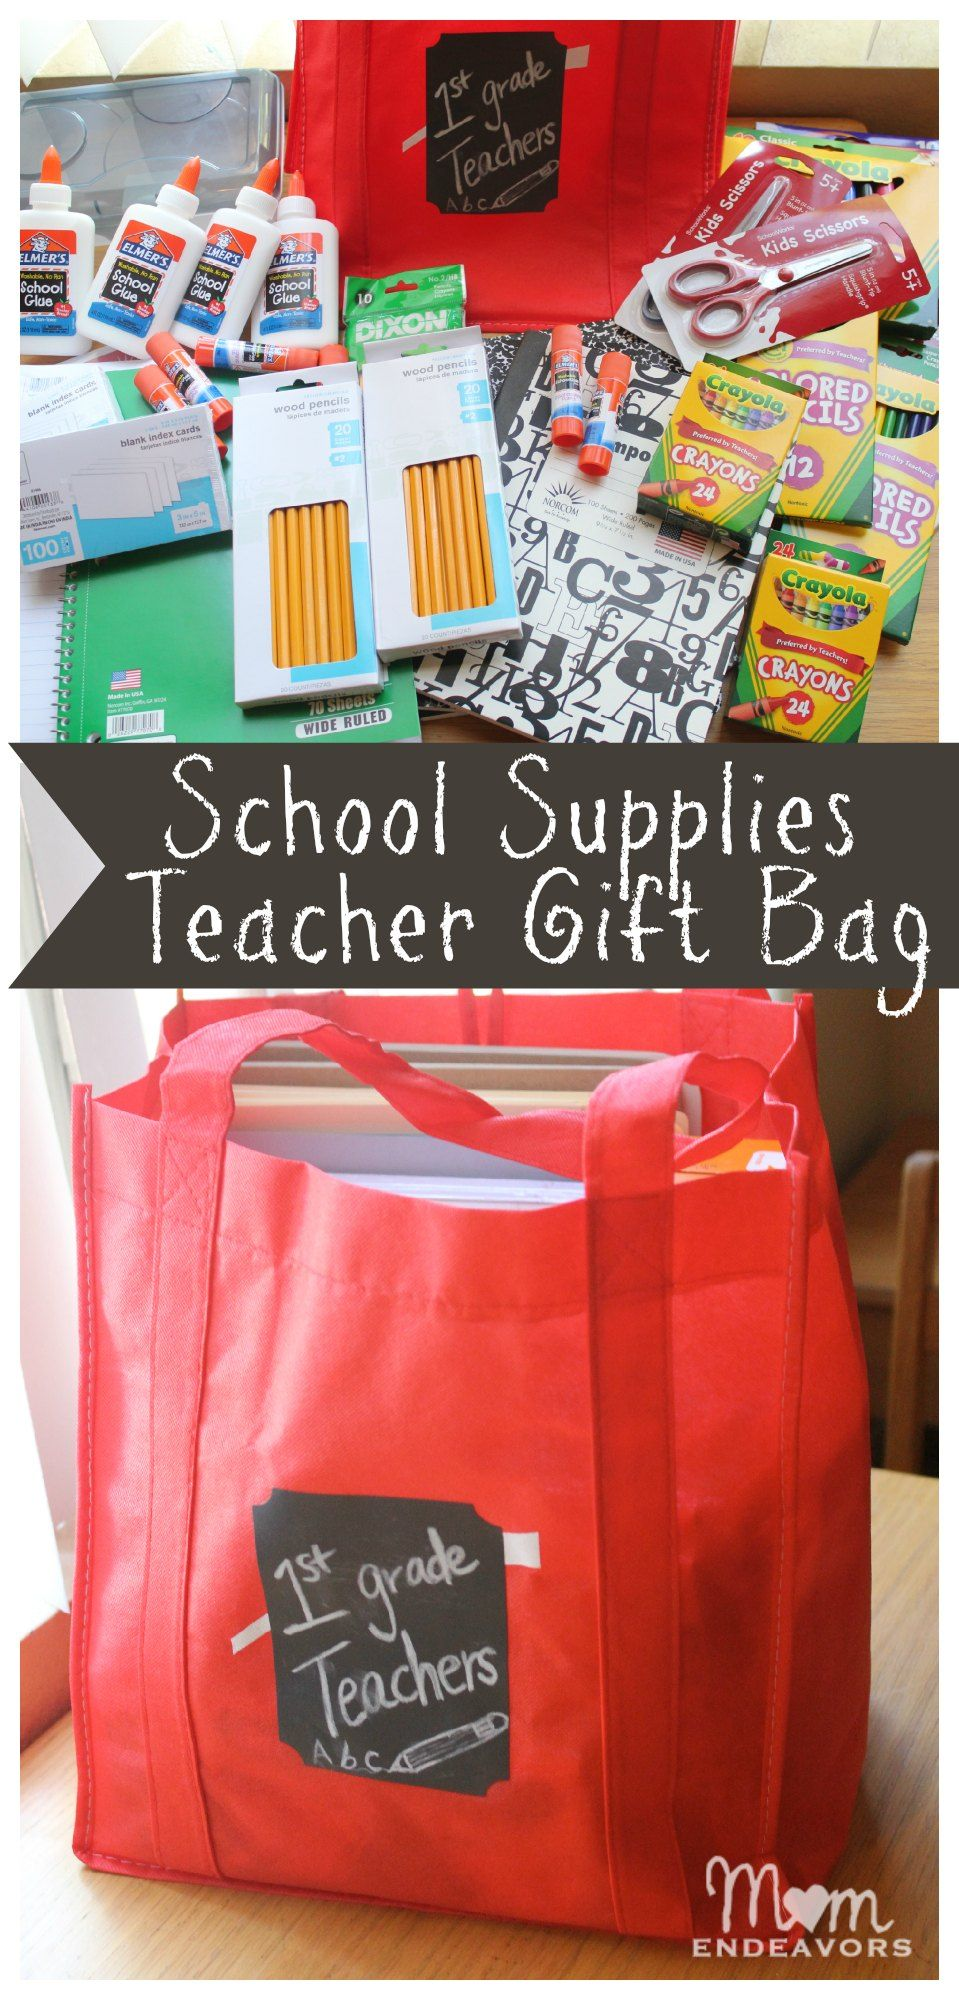 Bags for school teachers - Make A School Supplies Teacher Gift Bag To Donate To Your School Such A Great